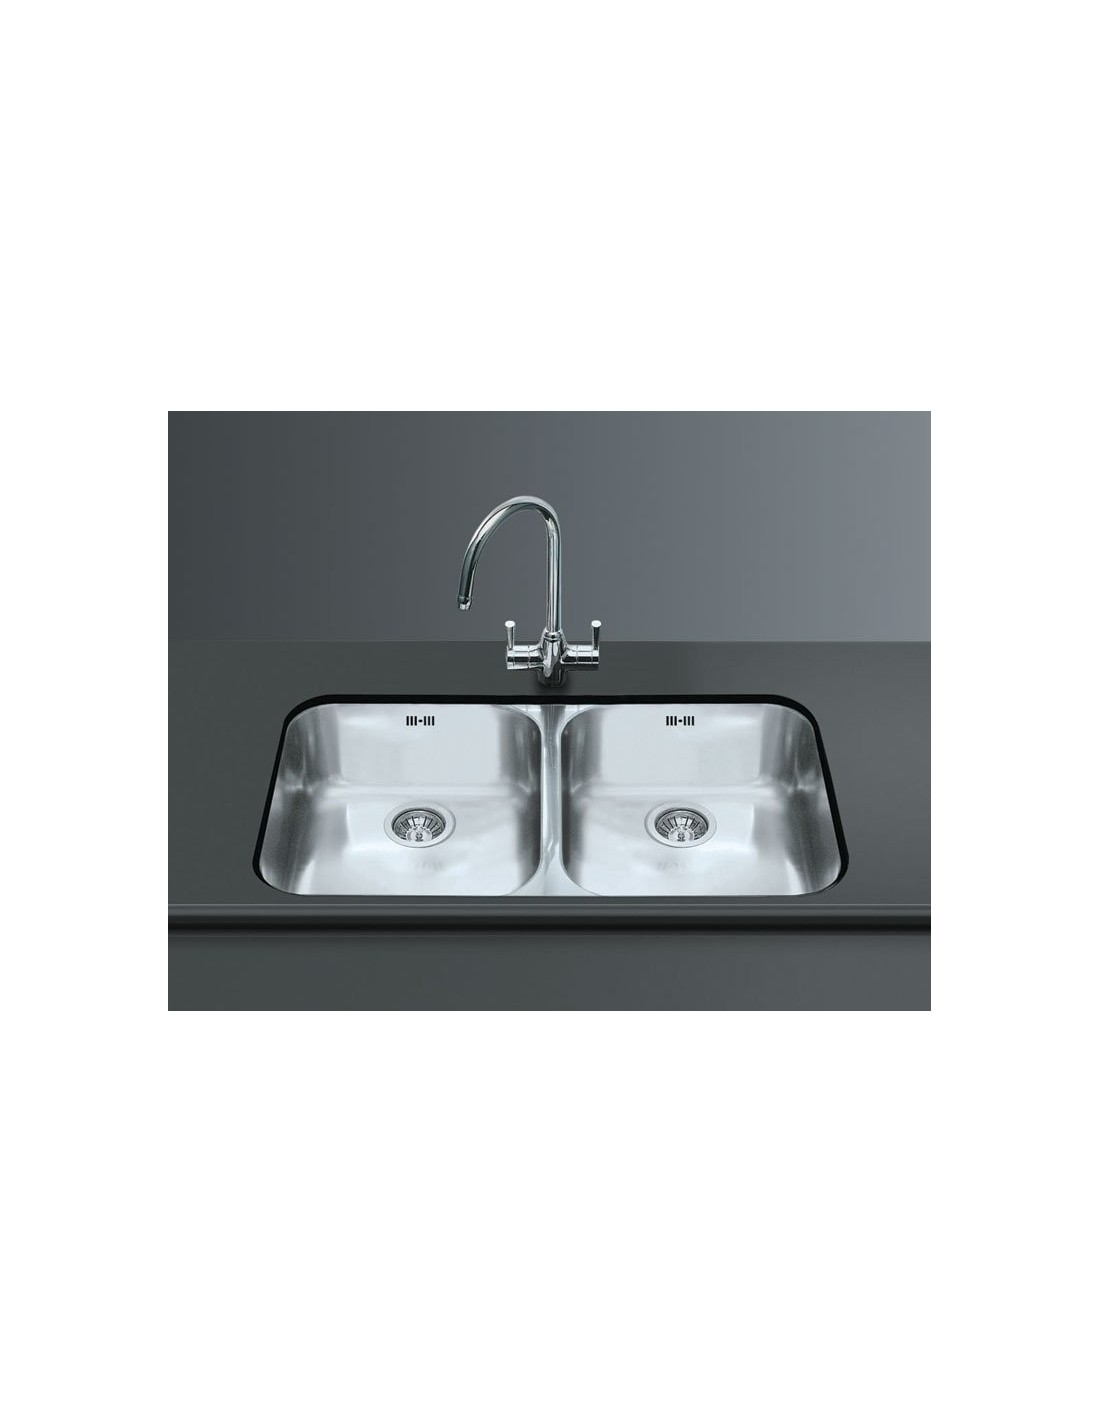 Stainless Steel Double Sink Smeg Um4545 Undermount Large Double Kitchen Sink